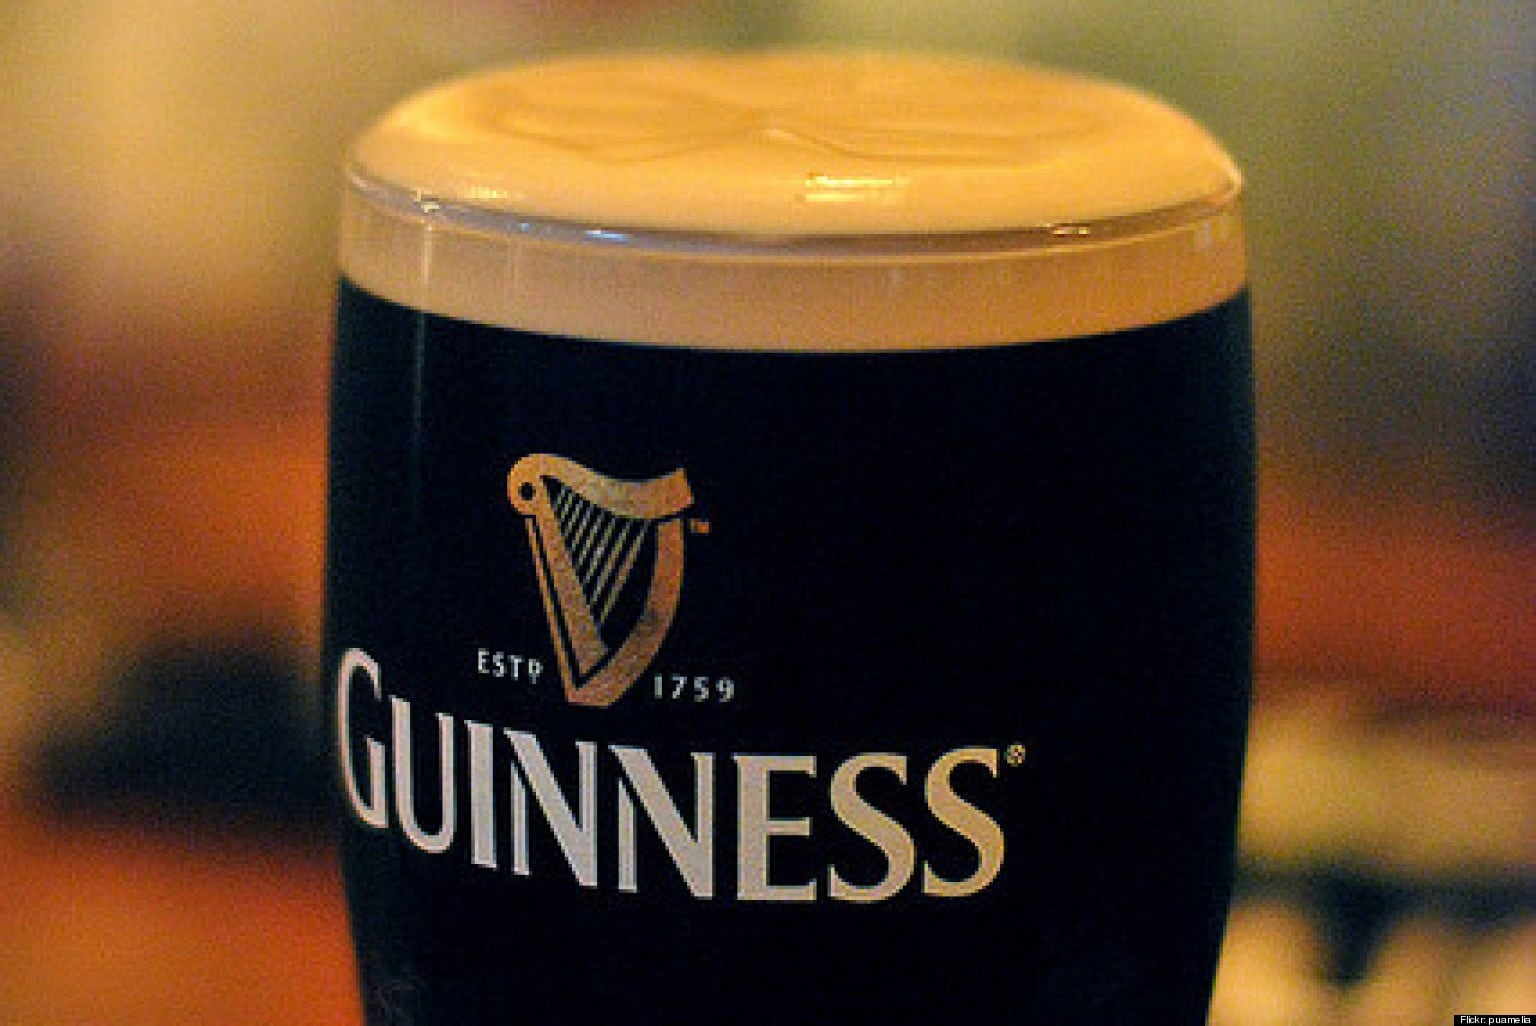 Guinness is one of the best Irish alcoholic drinks ever.